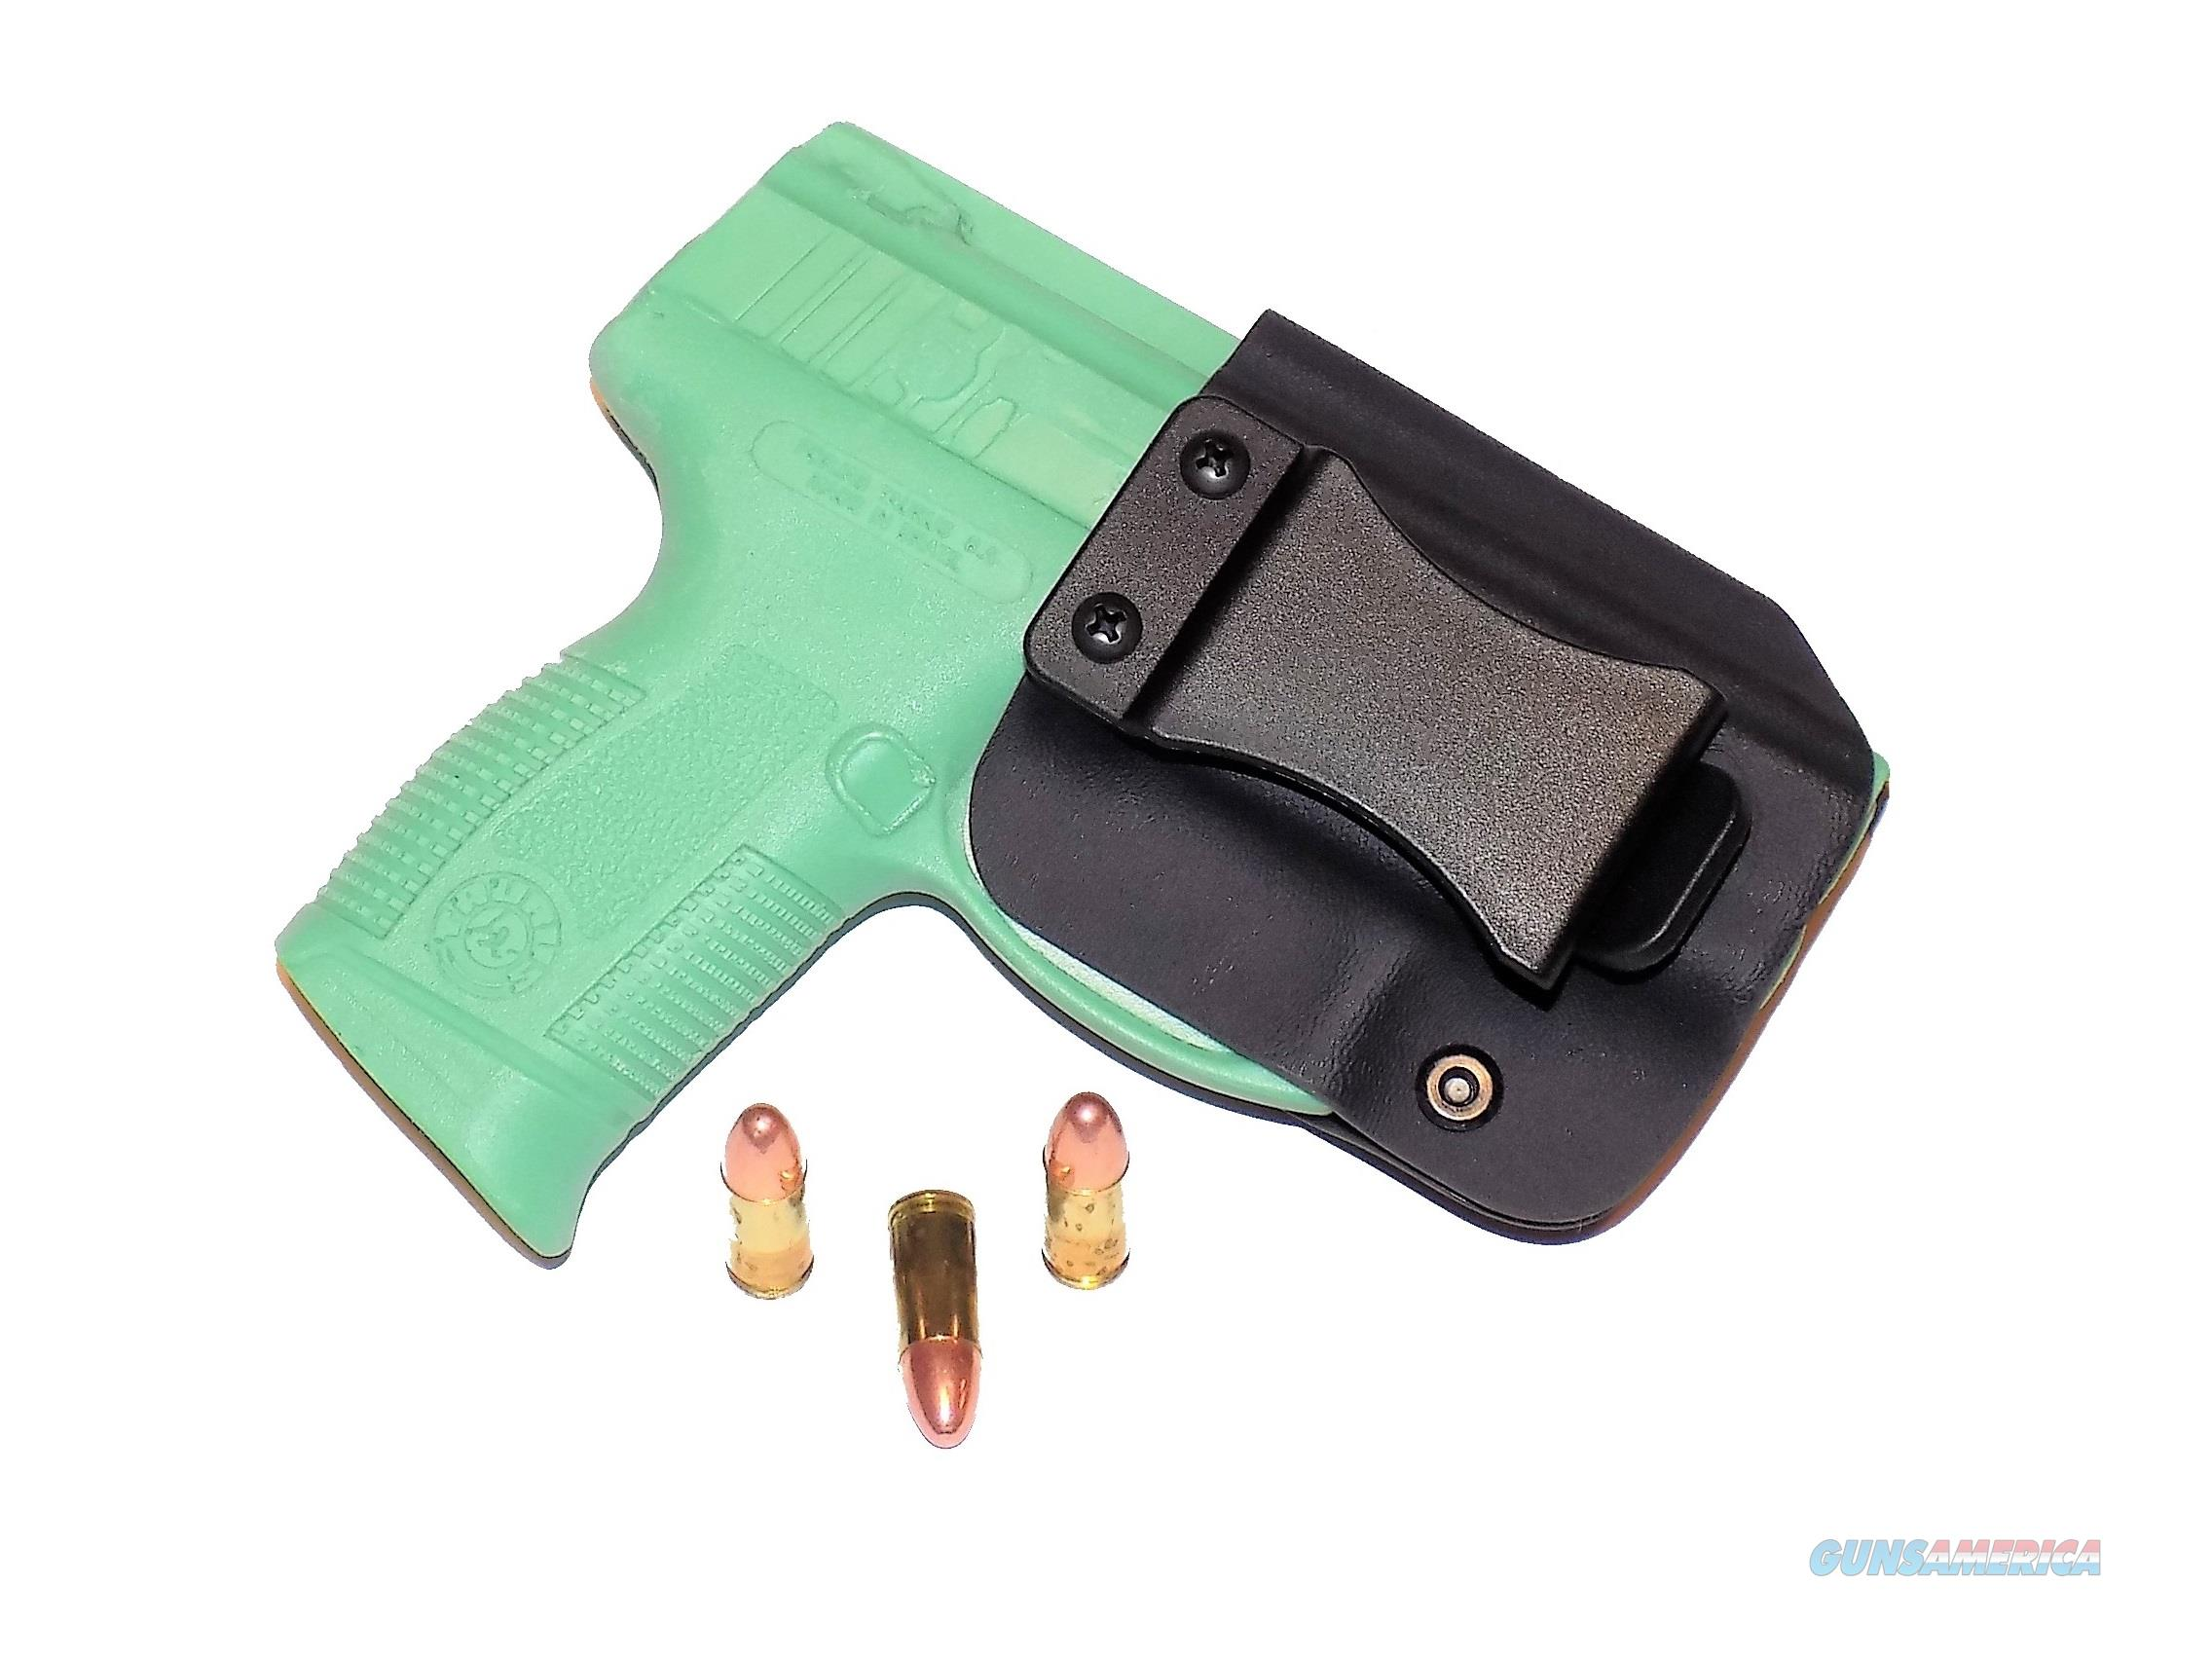 Aggressive Concealment PTPROIWBLPBK-RH IWB Kydex Holster for The Taurus PT 111/140 Pro  Non-Guns > Holsters and Gunleather > Concealed Carry